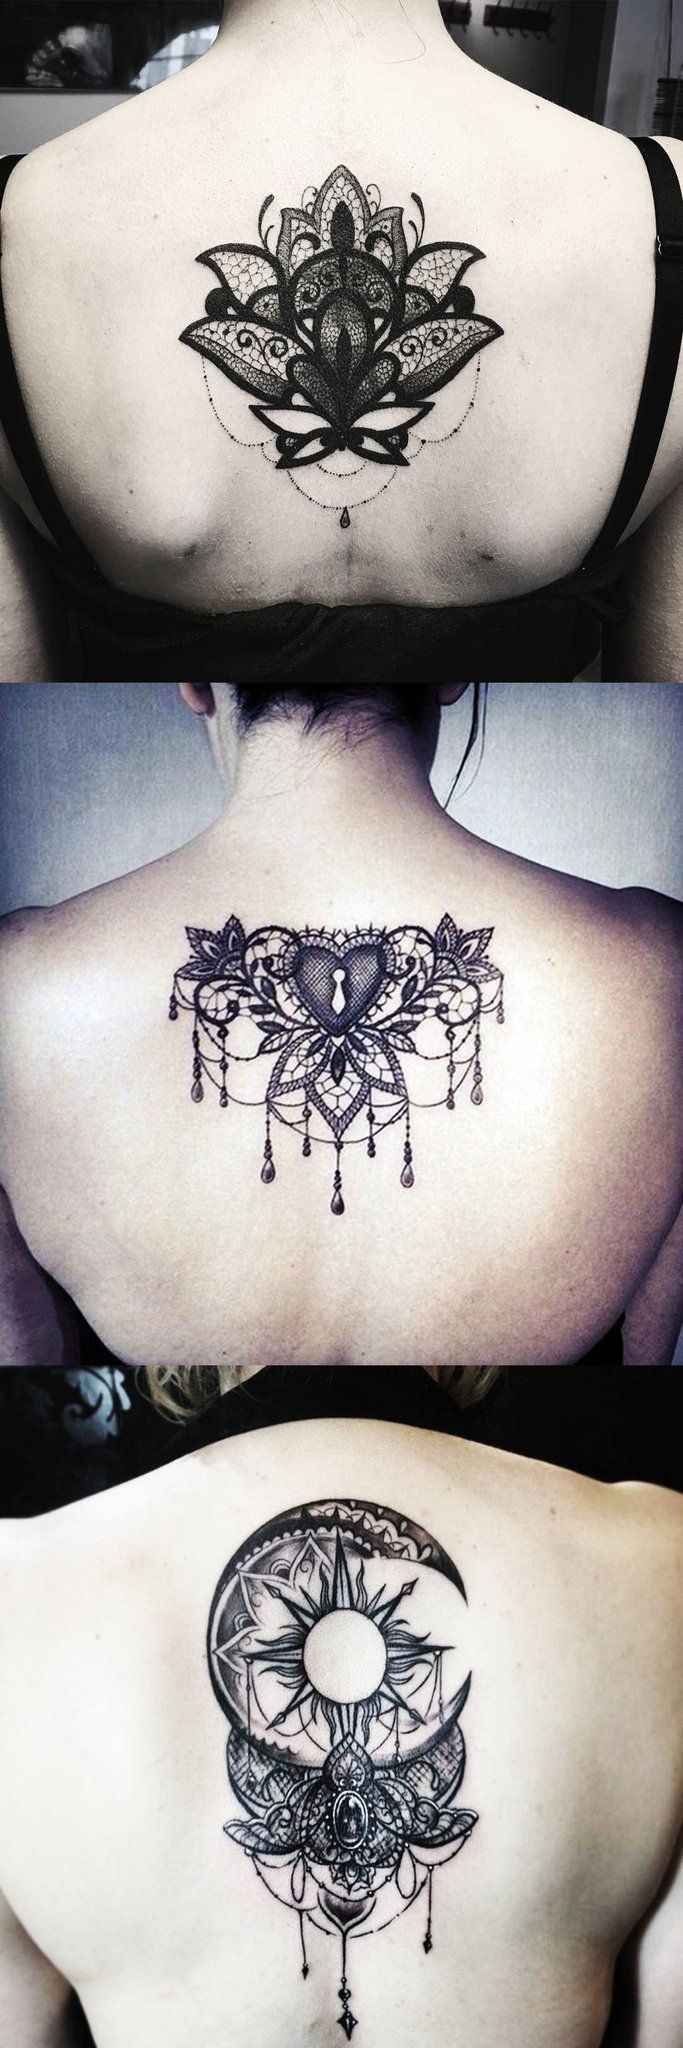 Henna Tattoo Back Spine: Lace Tattoos Ideas For Women